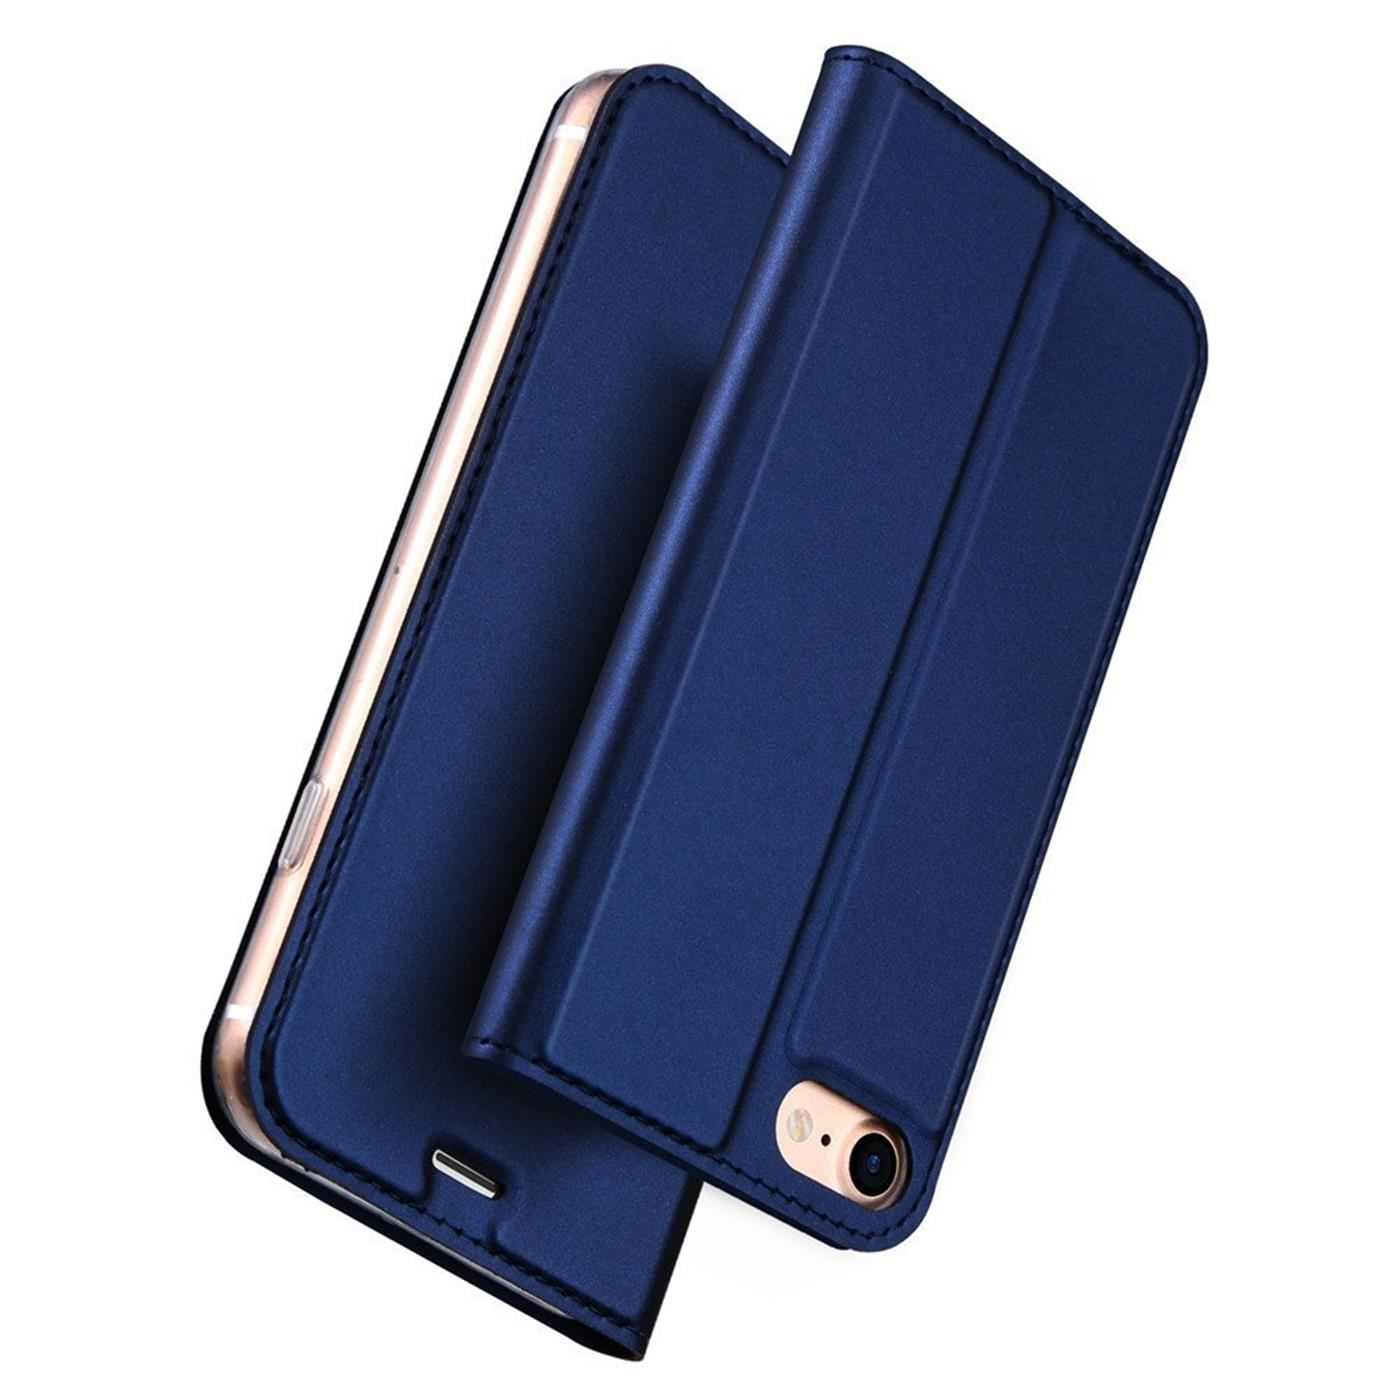 Handy-Huelle-fuer-iPhone-7-iPhone-8-Book-Case-Schutzhuelle-Tasche-Slim-Flip-Cover Indexbild 12